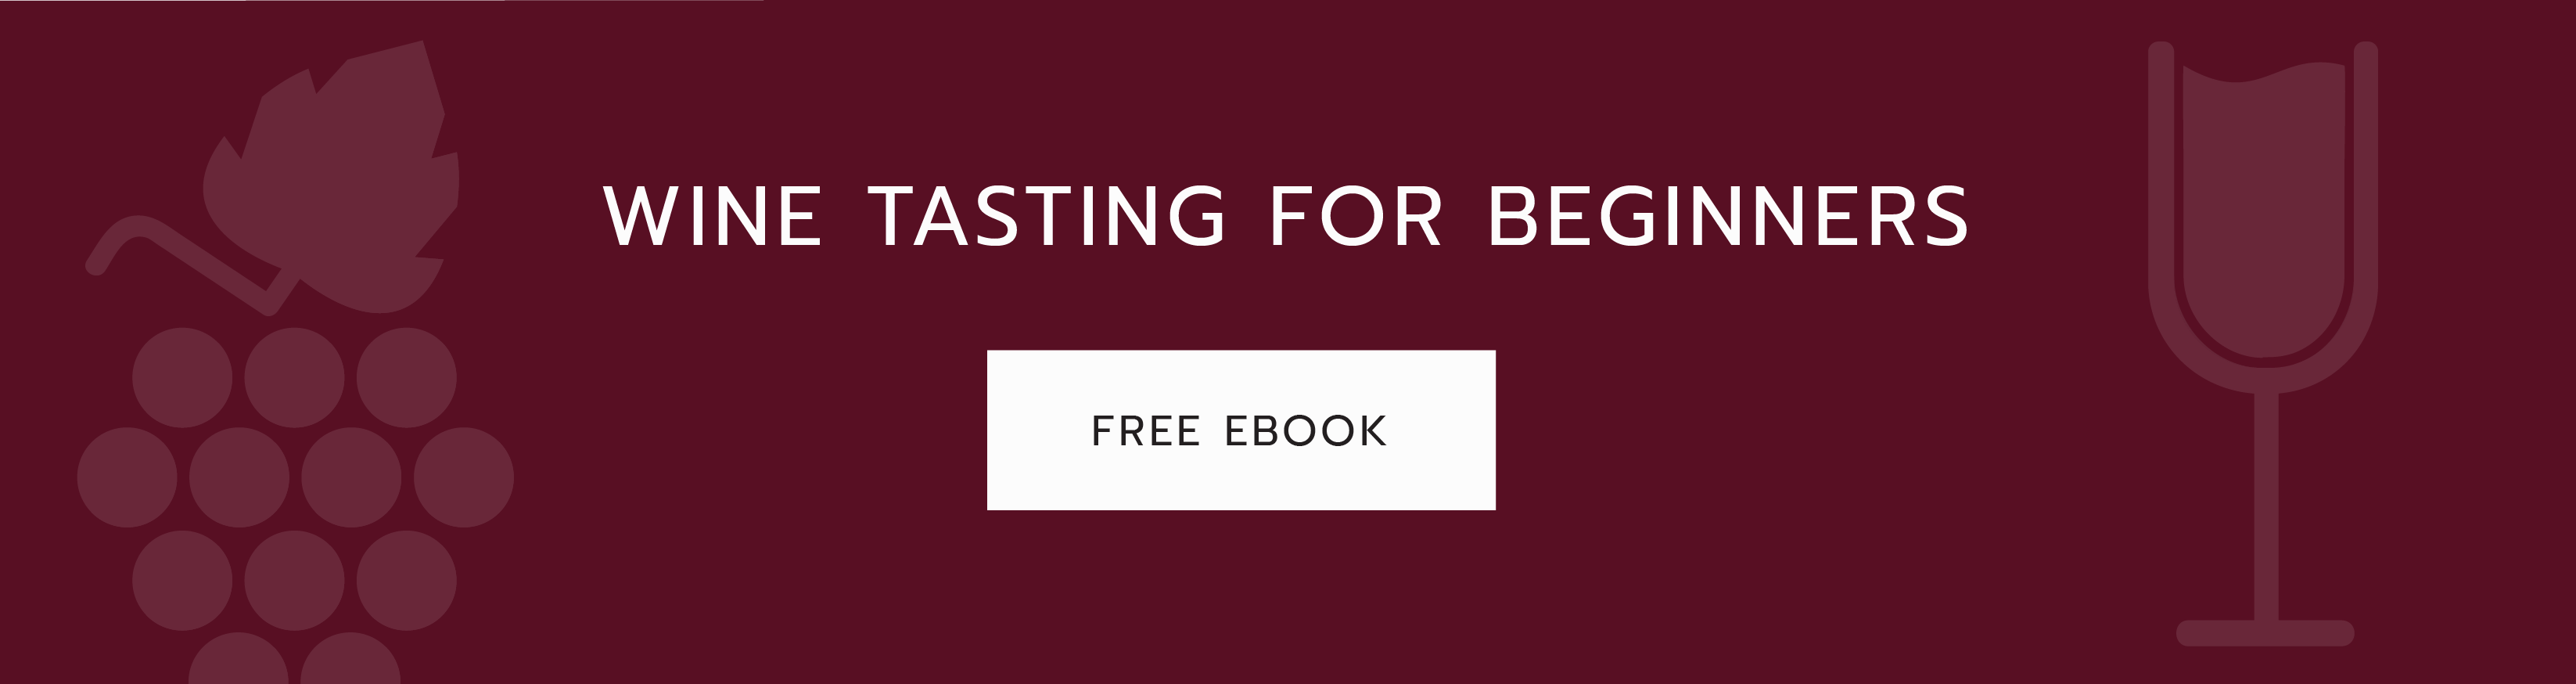 4cddd14e0e38a Wine tasting for beginners  The complete guide to wine tasting (2018)